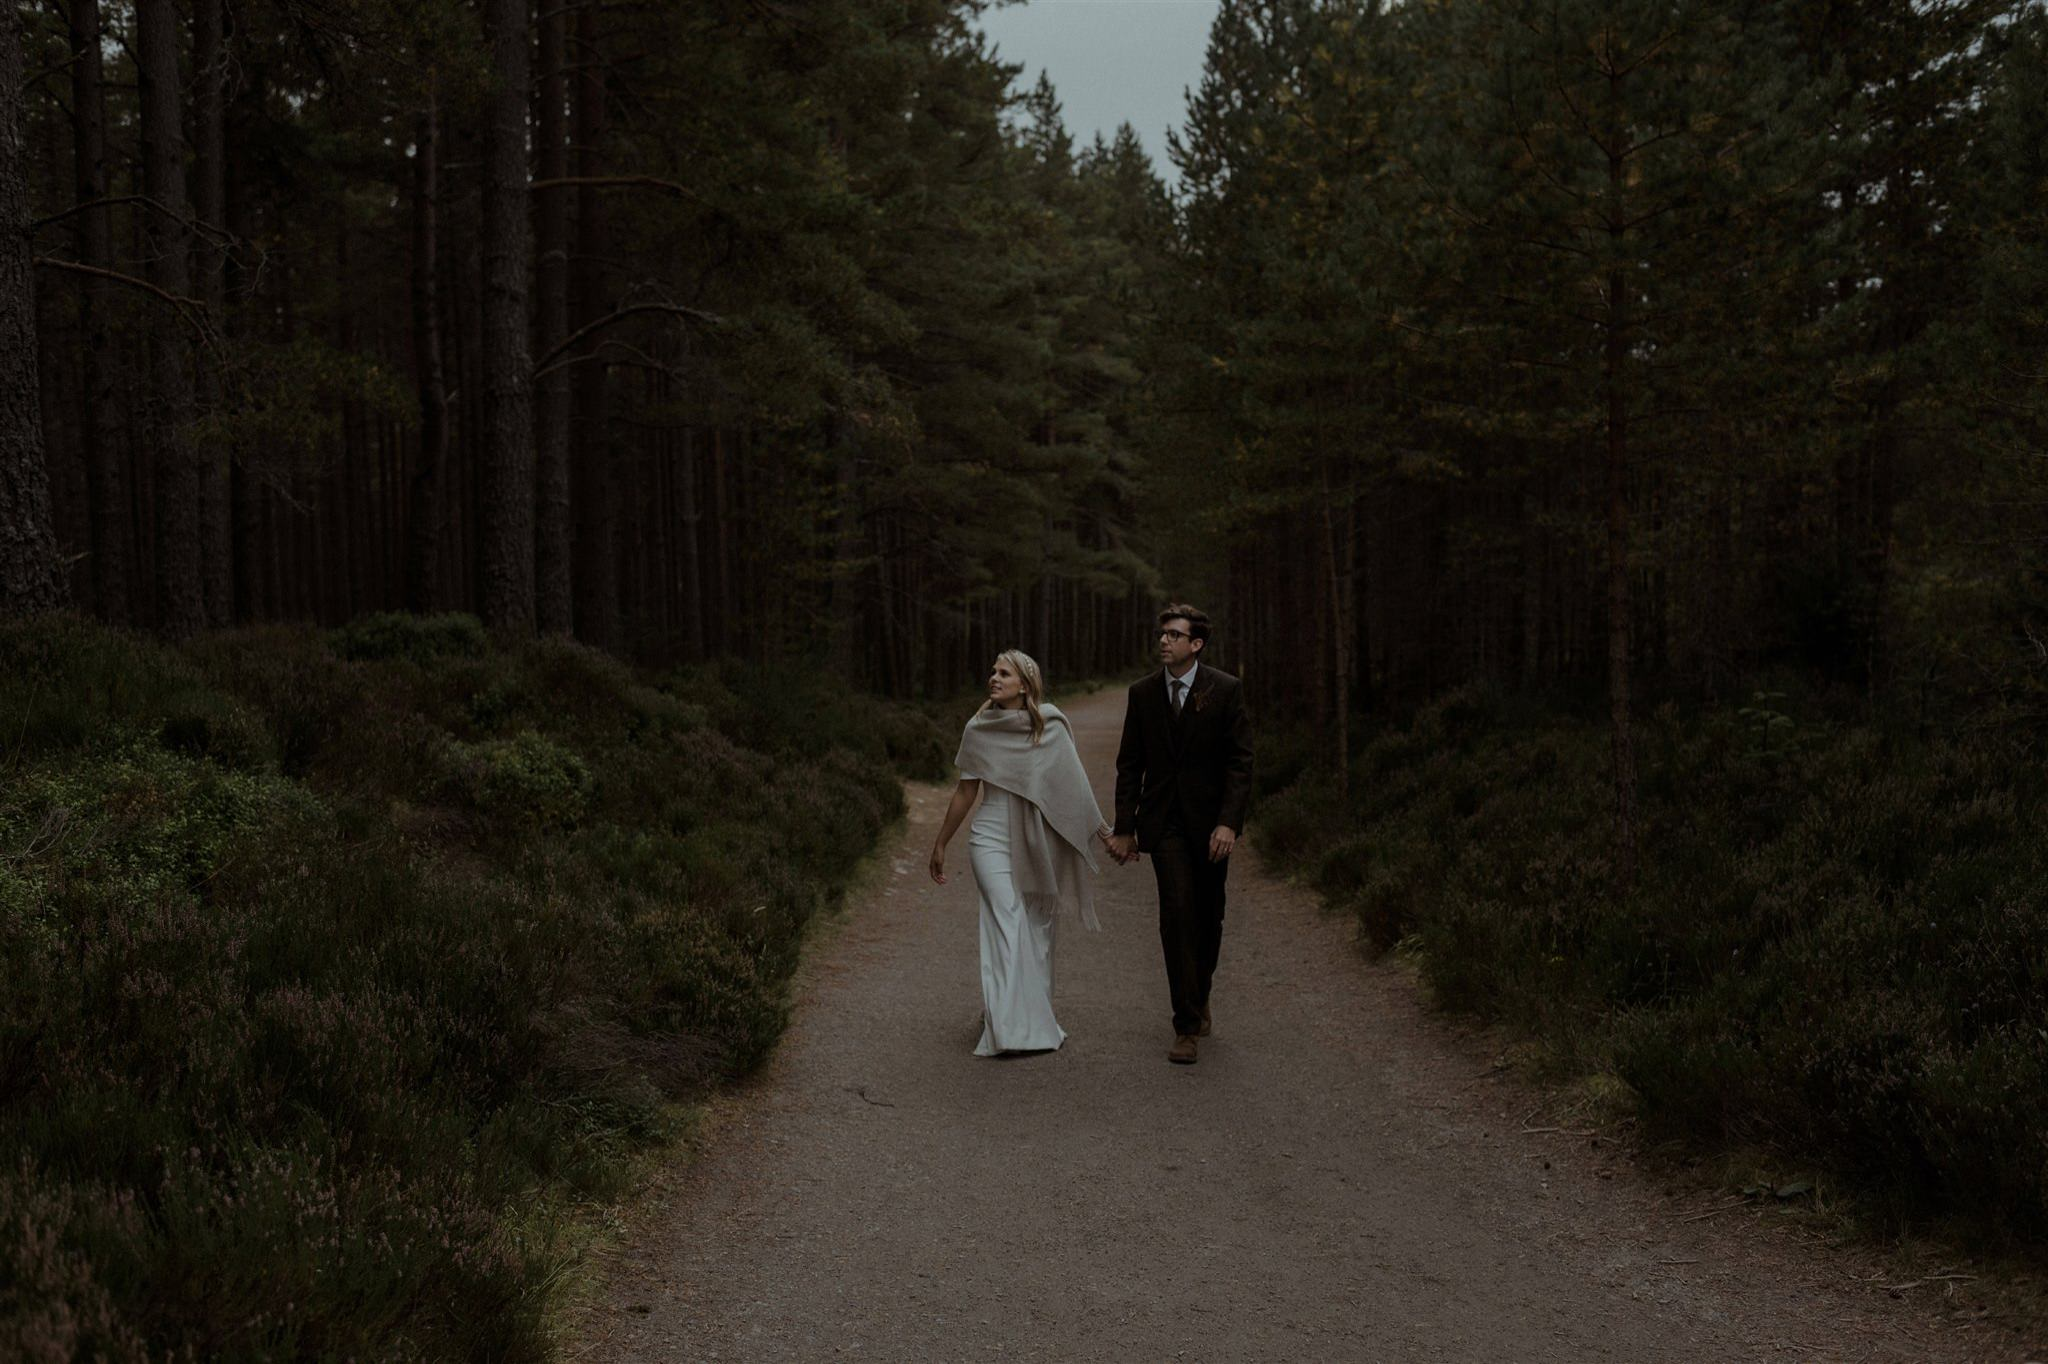 Bride and groom walk through the forest near Glenmore Lodge in the Cairngorms